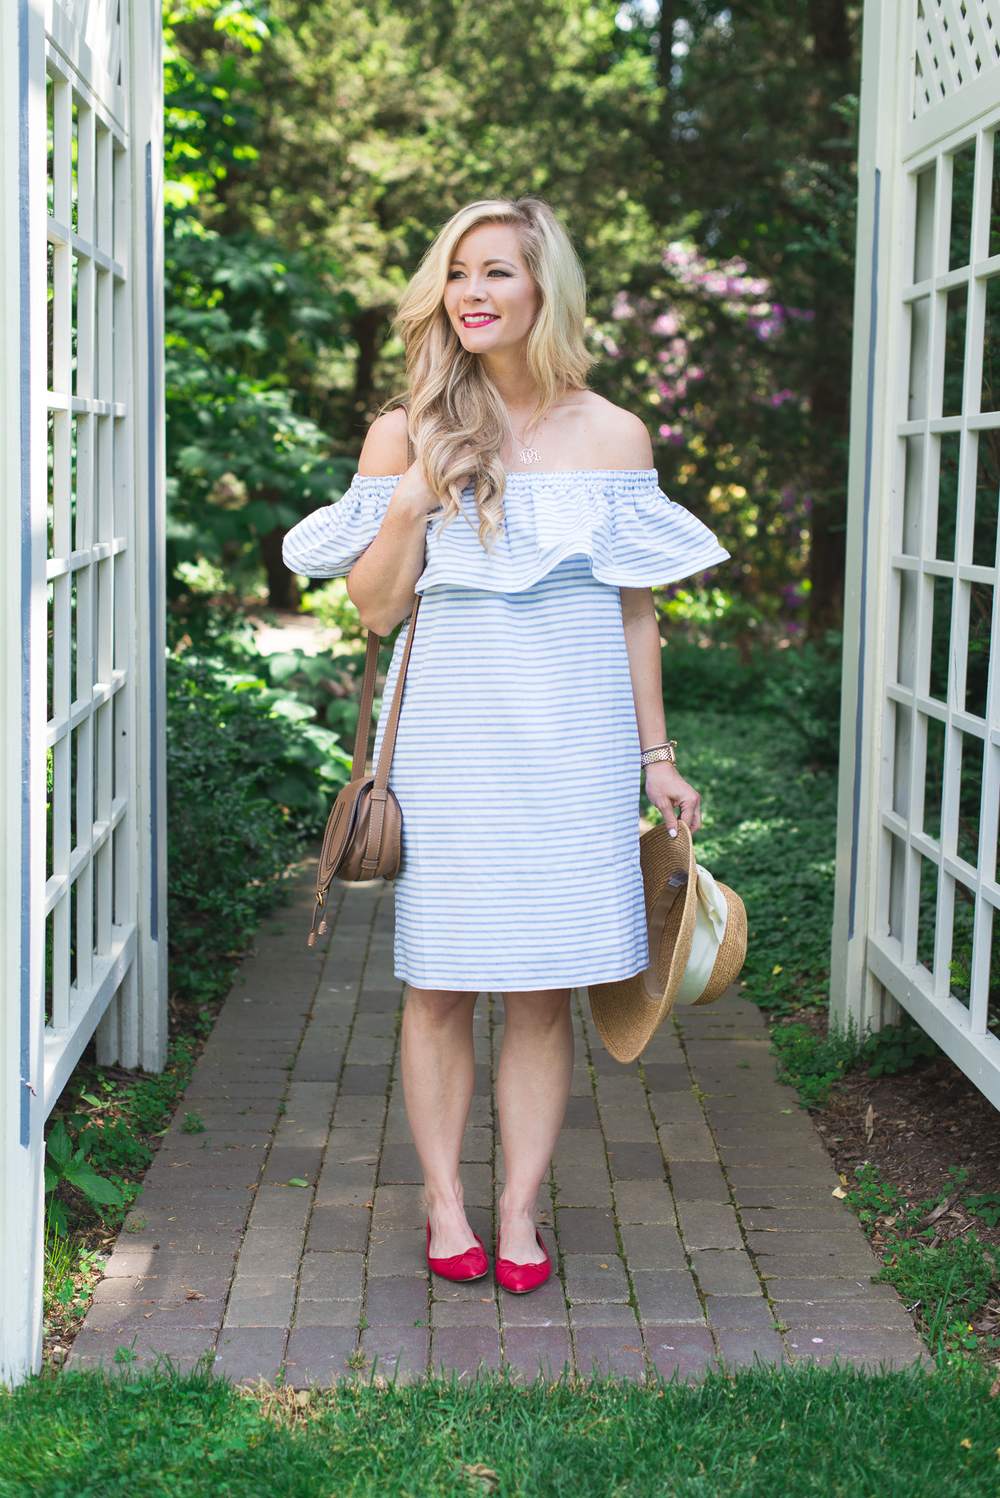 ashley showing off one of summer's hottest trends - the off-the-shoulder dress